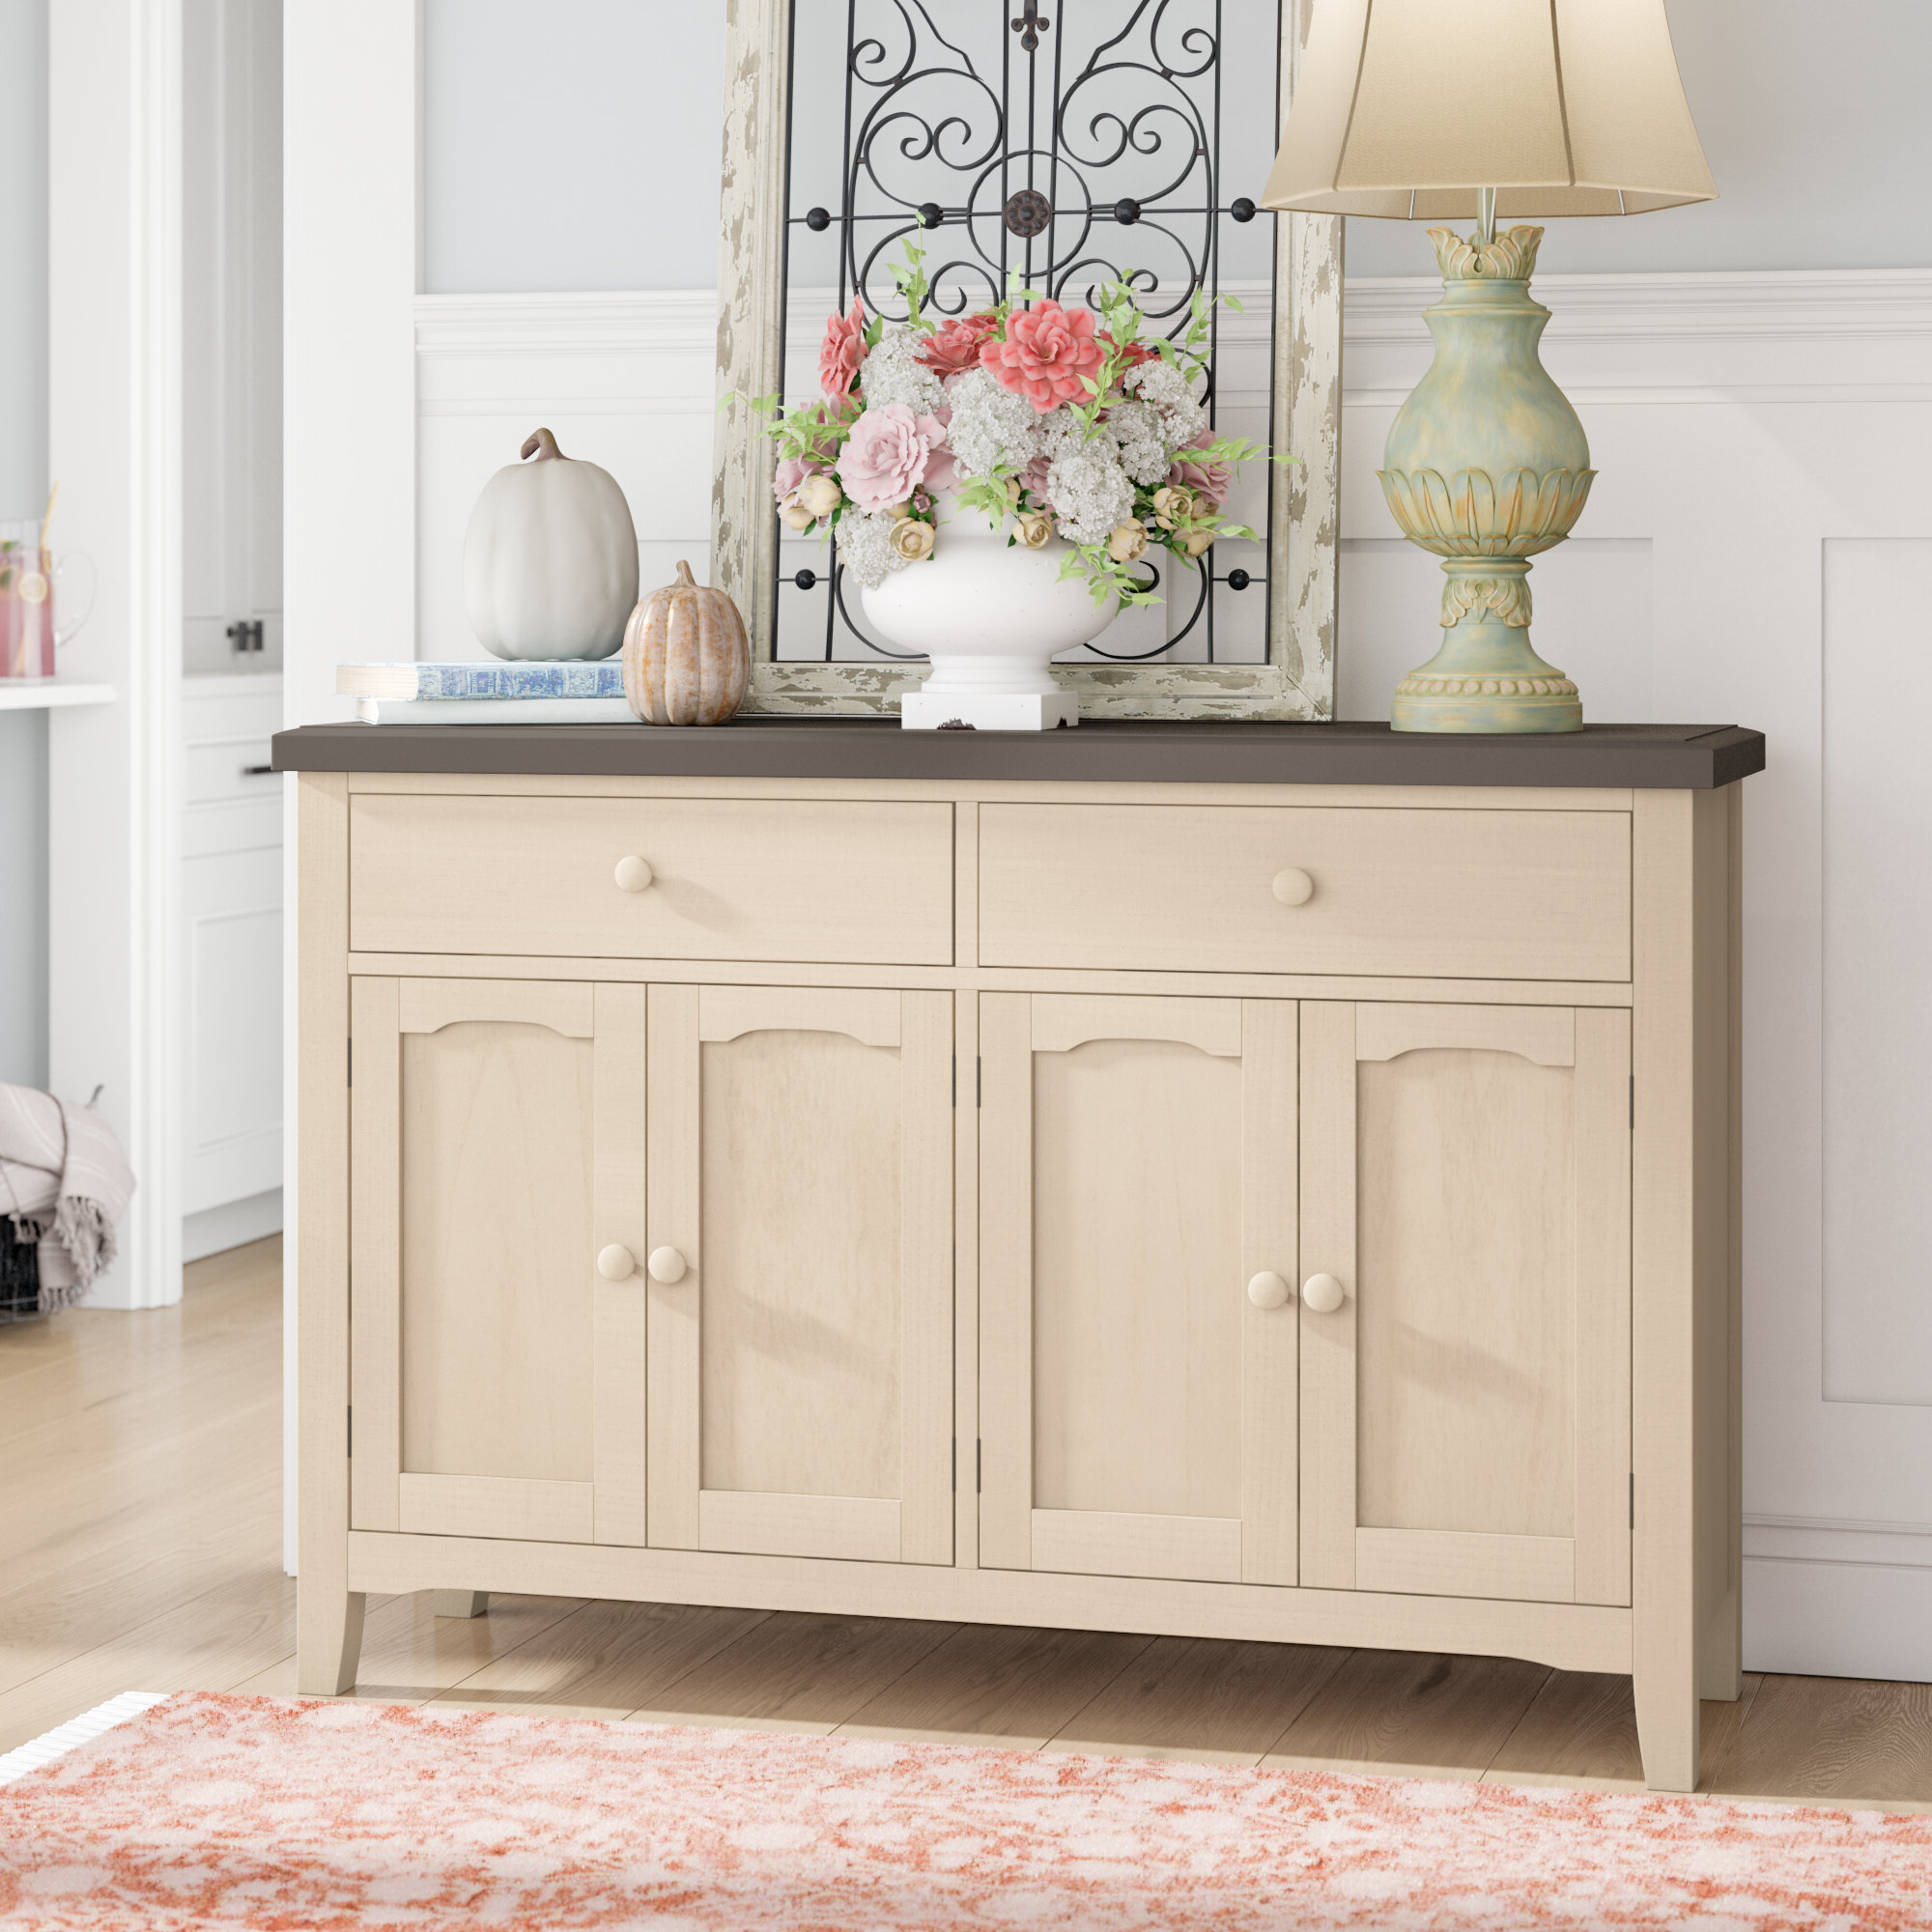 Coastal Sideboards & Buffets You'll Love In 2019 | Wayfair With Regard To White Beadboard Buffets (View 4 of 20)